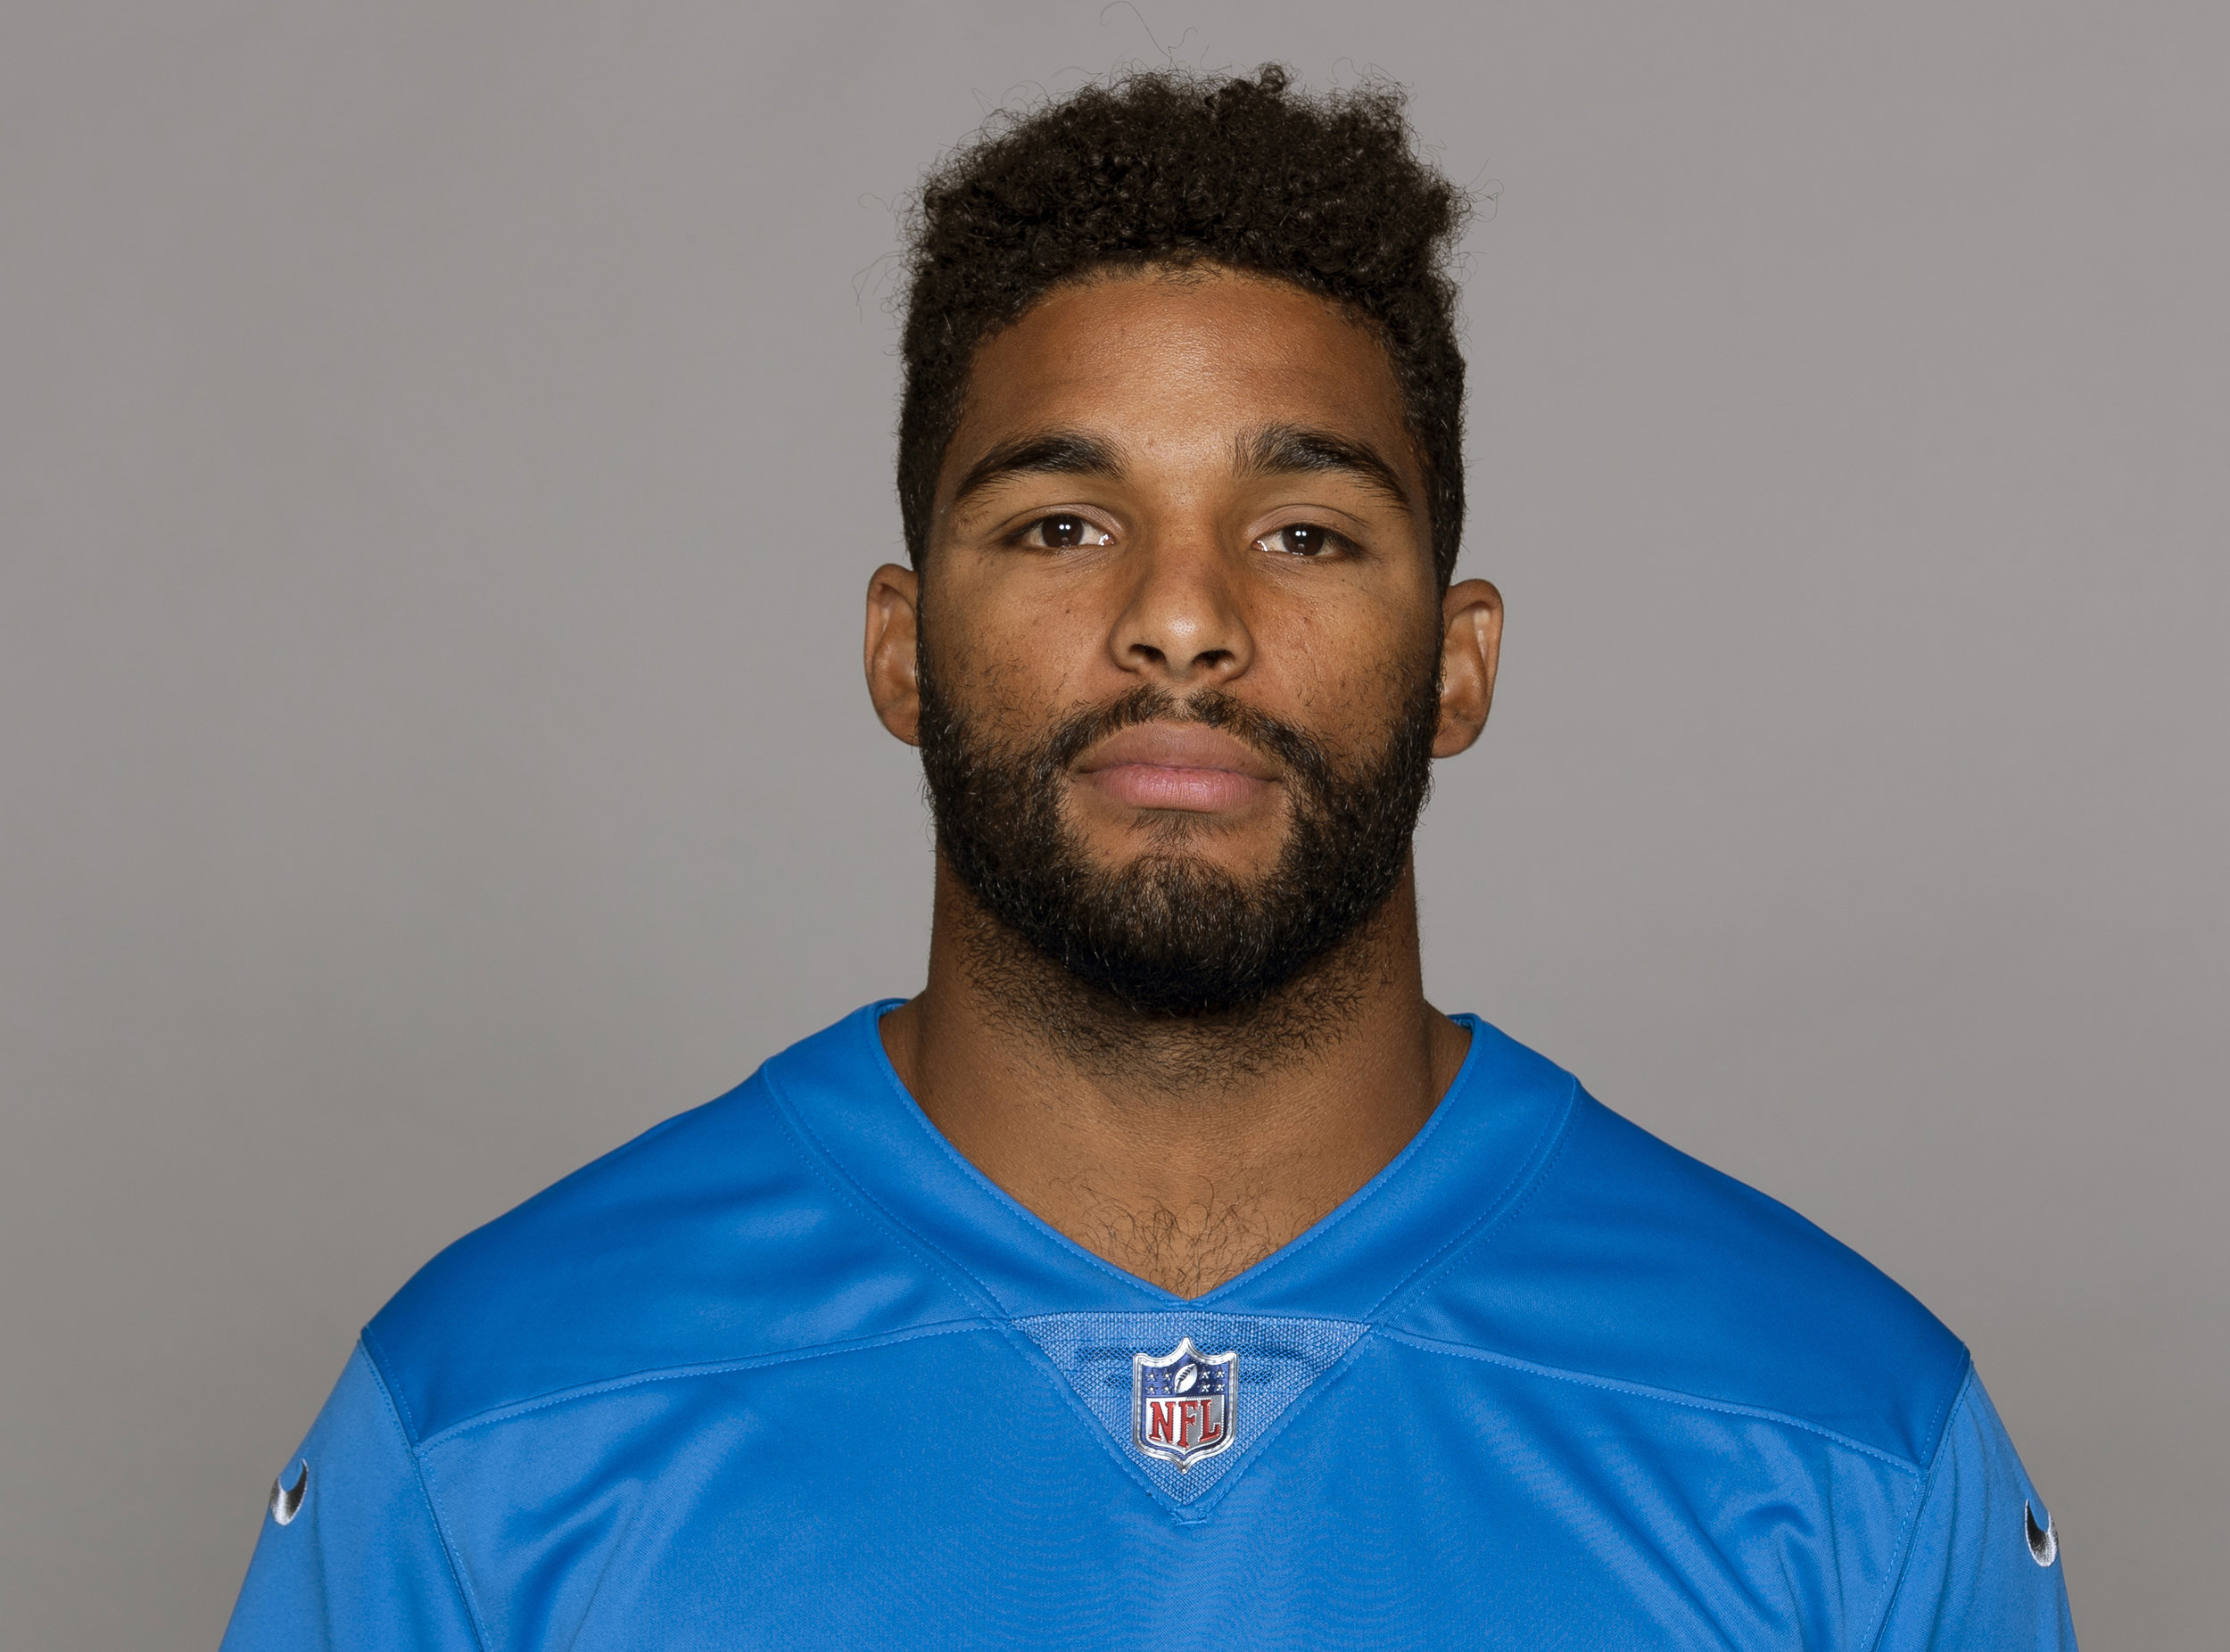 Detroit Lions Linebacker Trevor Bates was arraigned by video conference in Queens Criminal Court. AP Photo.